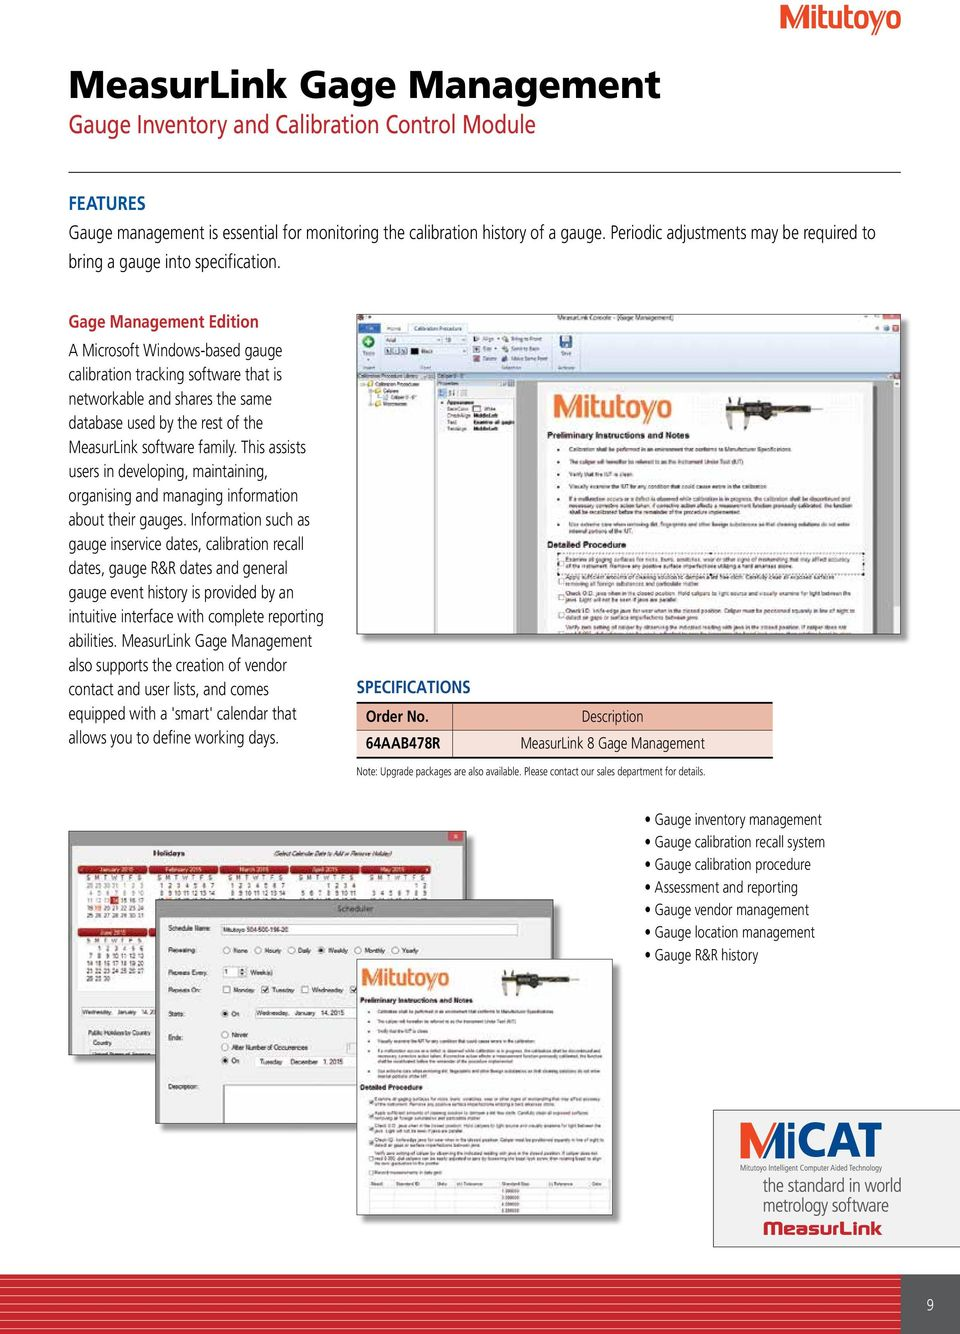 Gage Management Edition A Microsoft Windows-based gauge calibration tracking software that is networkable and shares the same database used by the rest of the MeasurLink software family.